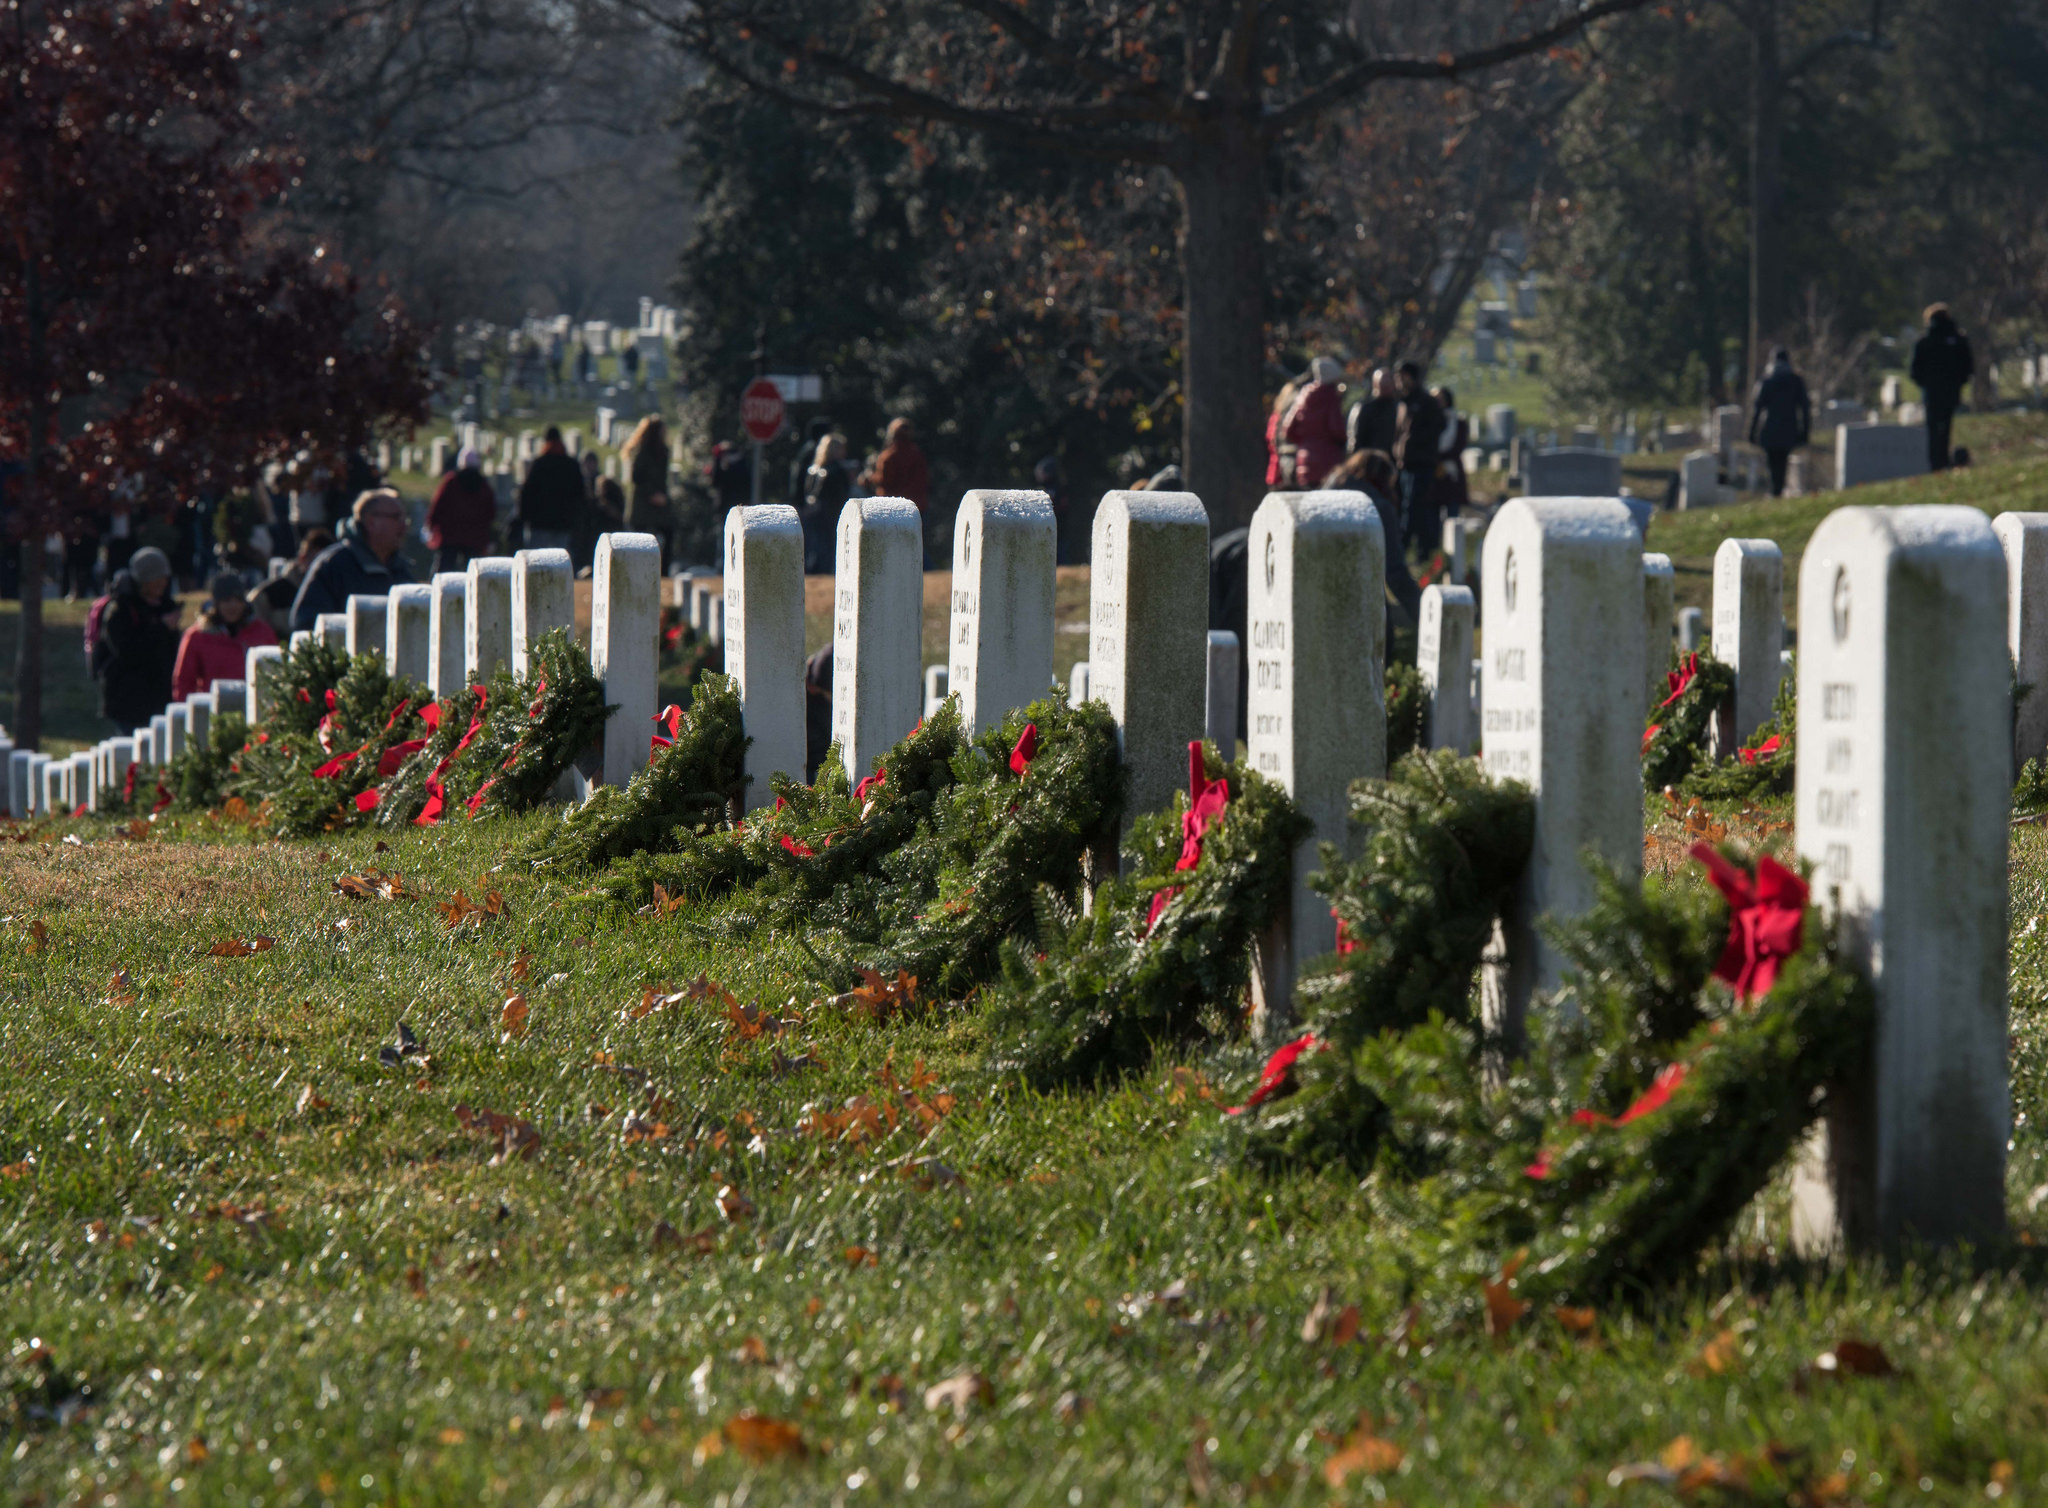 Service members and volunteers participate in Wreaths Across America at Arlington National Cemetery, Va., Dec. 16, 2017. (Sgt. George Huley/Army)